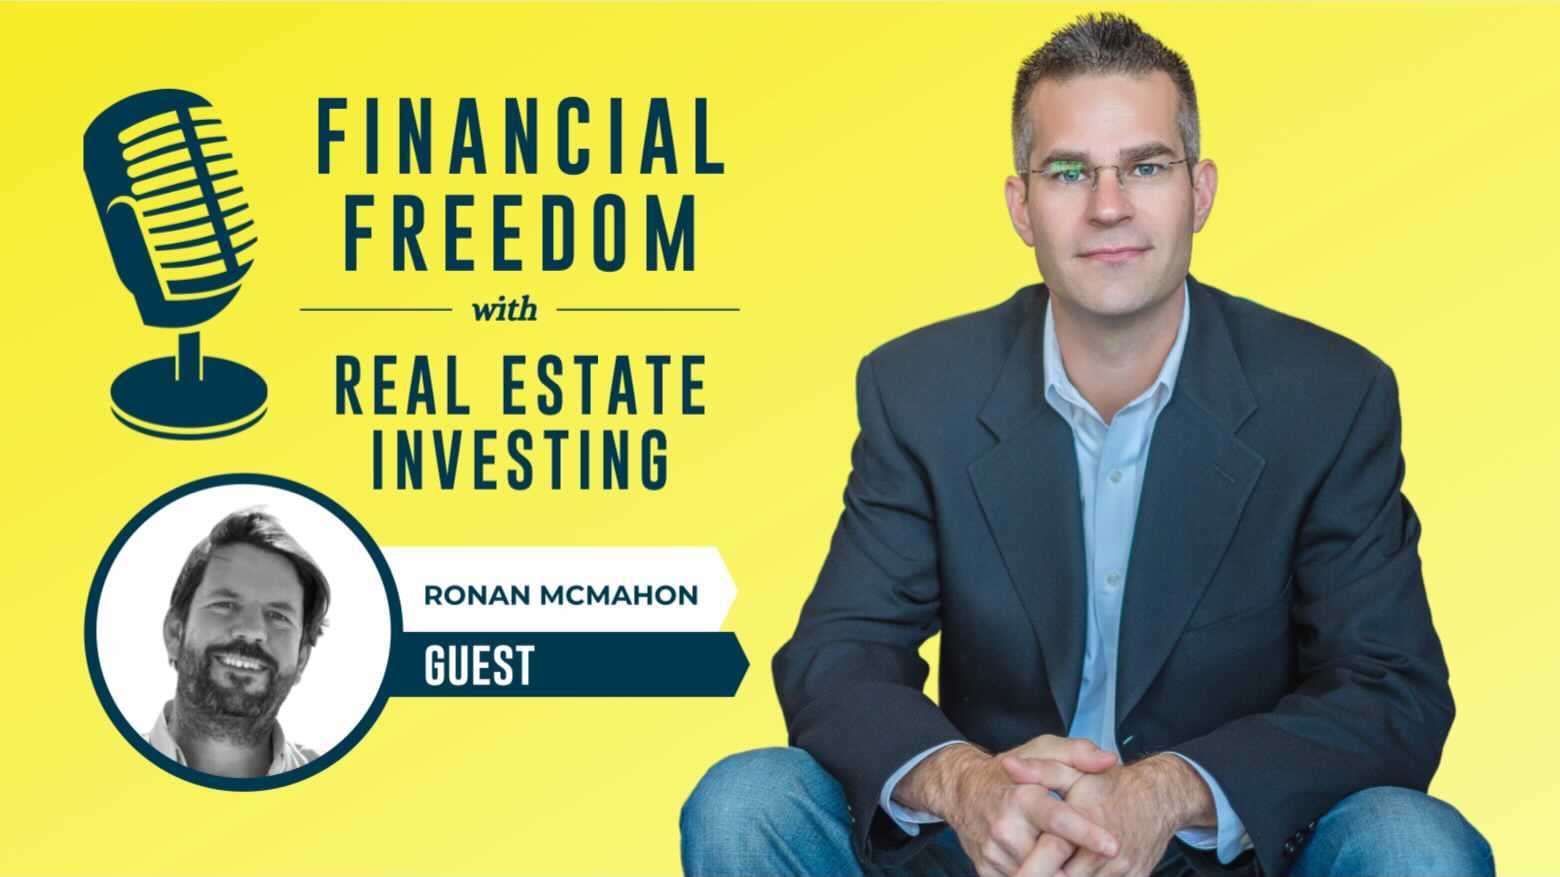 MB287: Investing in International Real Estate Markets – With Ronan McMahon